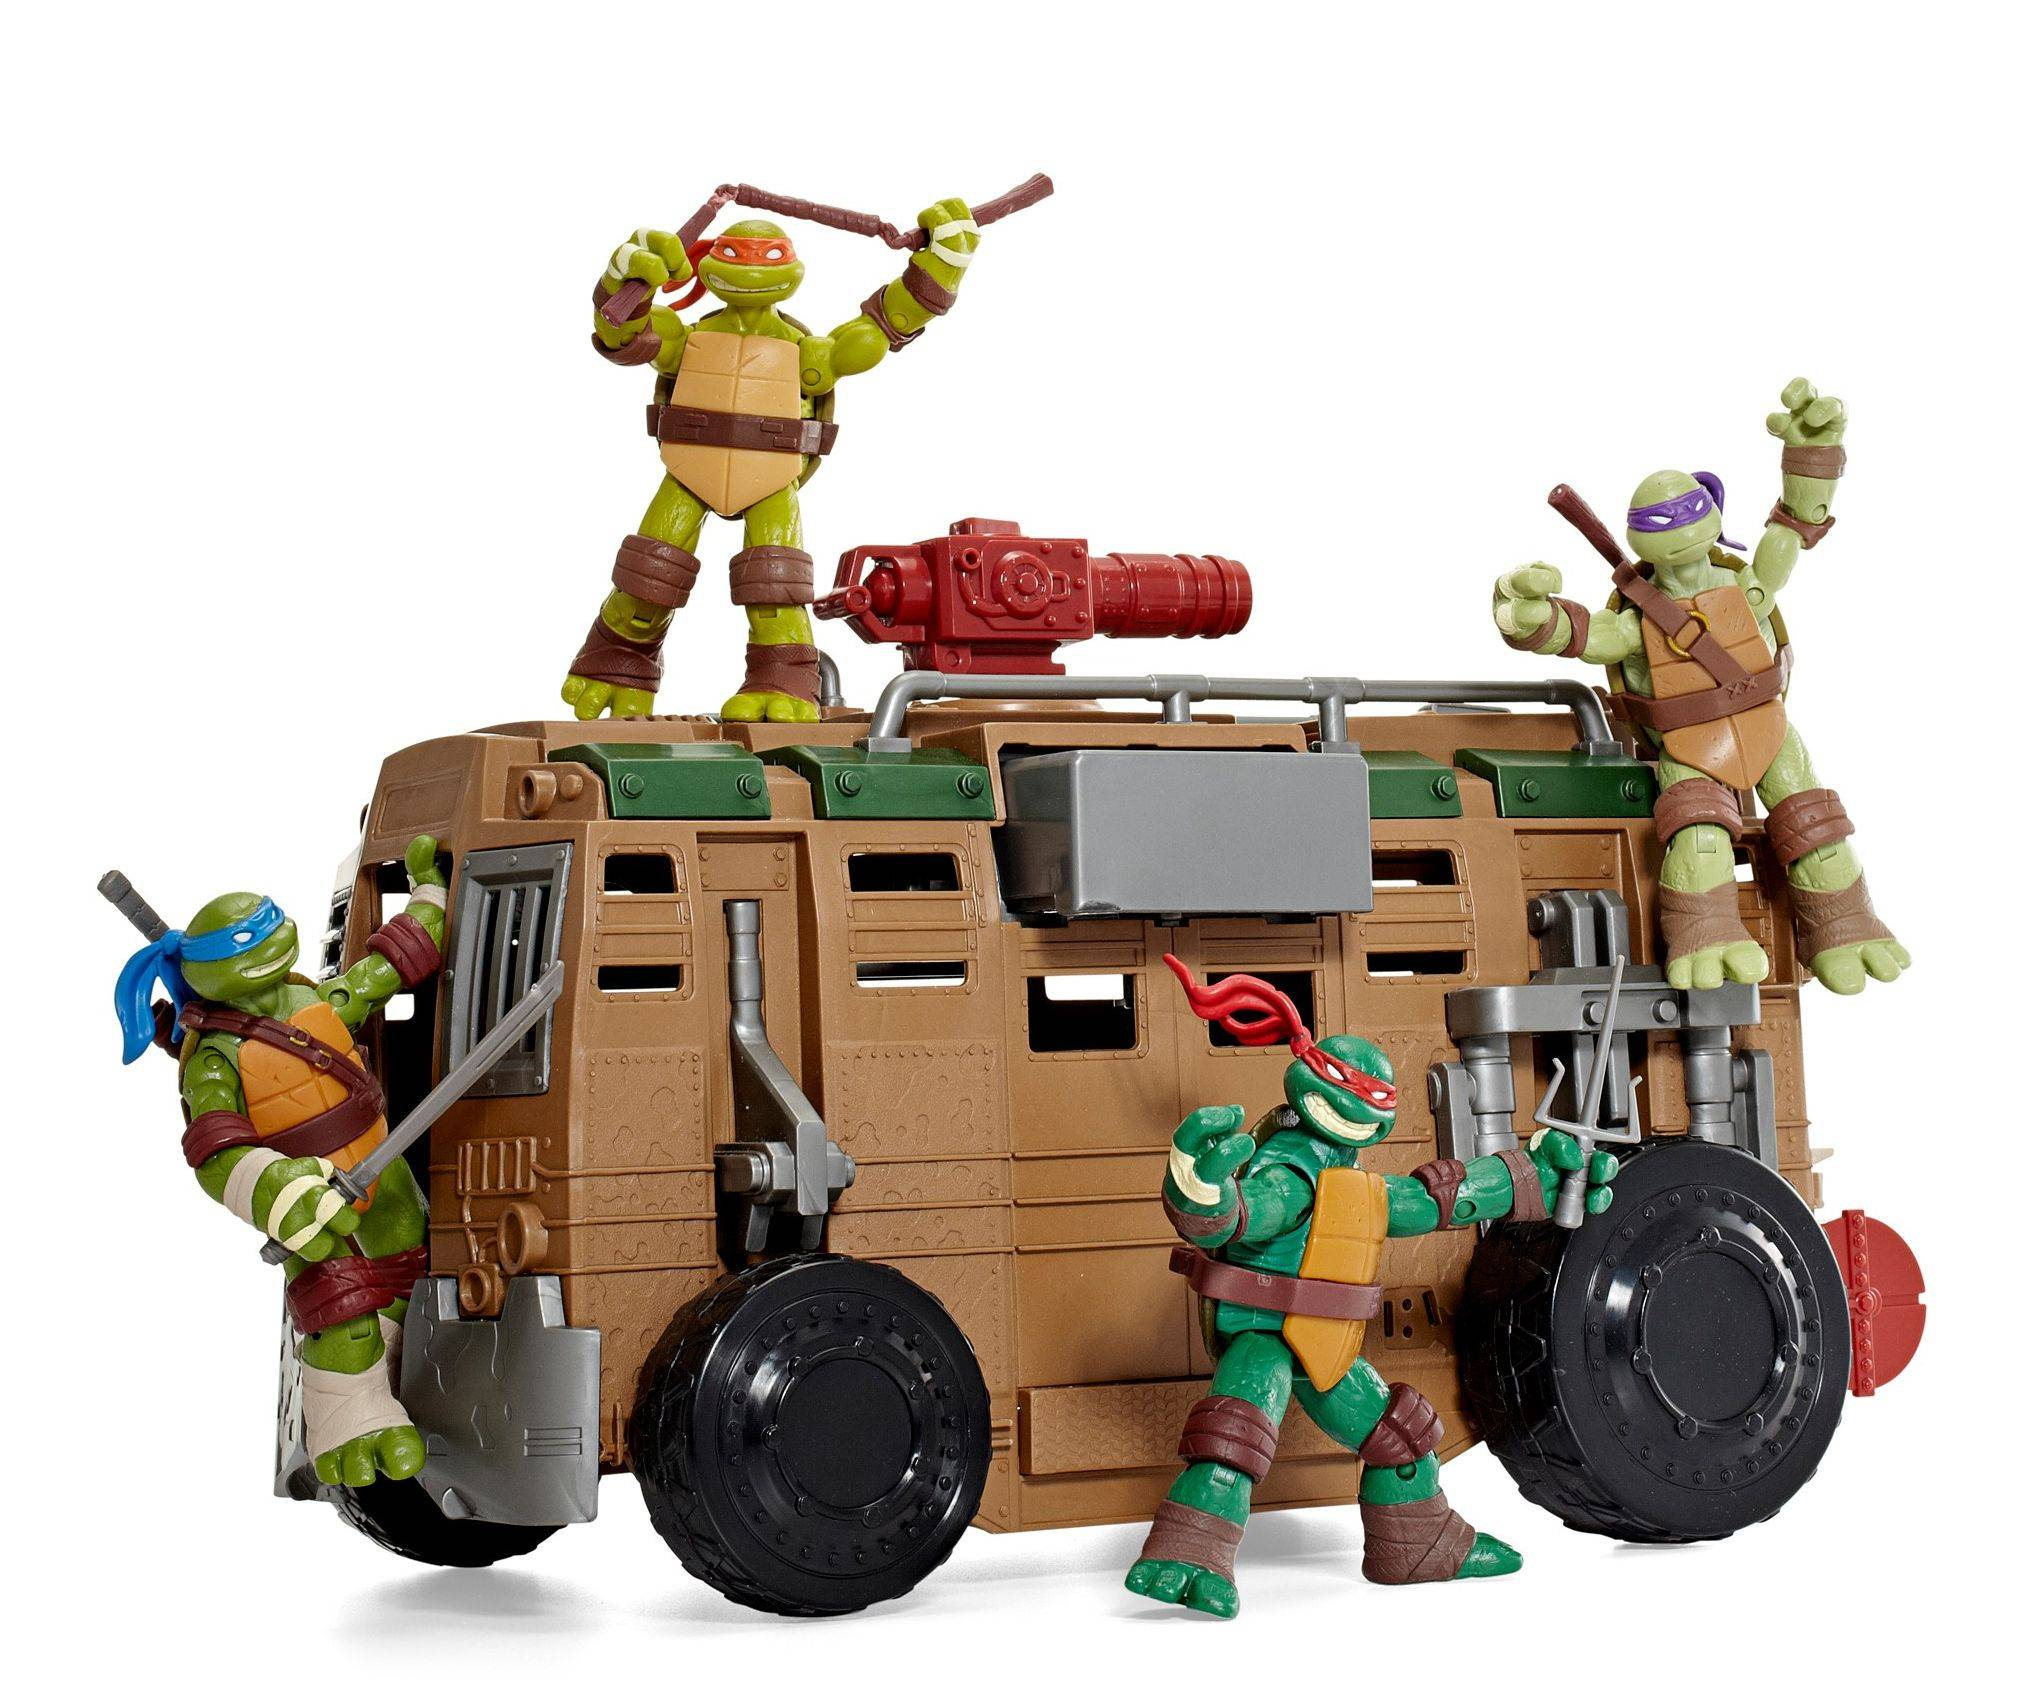 Playmates Shellraiser toy with Teenage Mutant Ninja Turtles, sold separately.